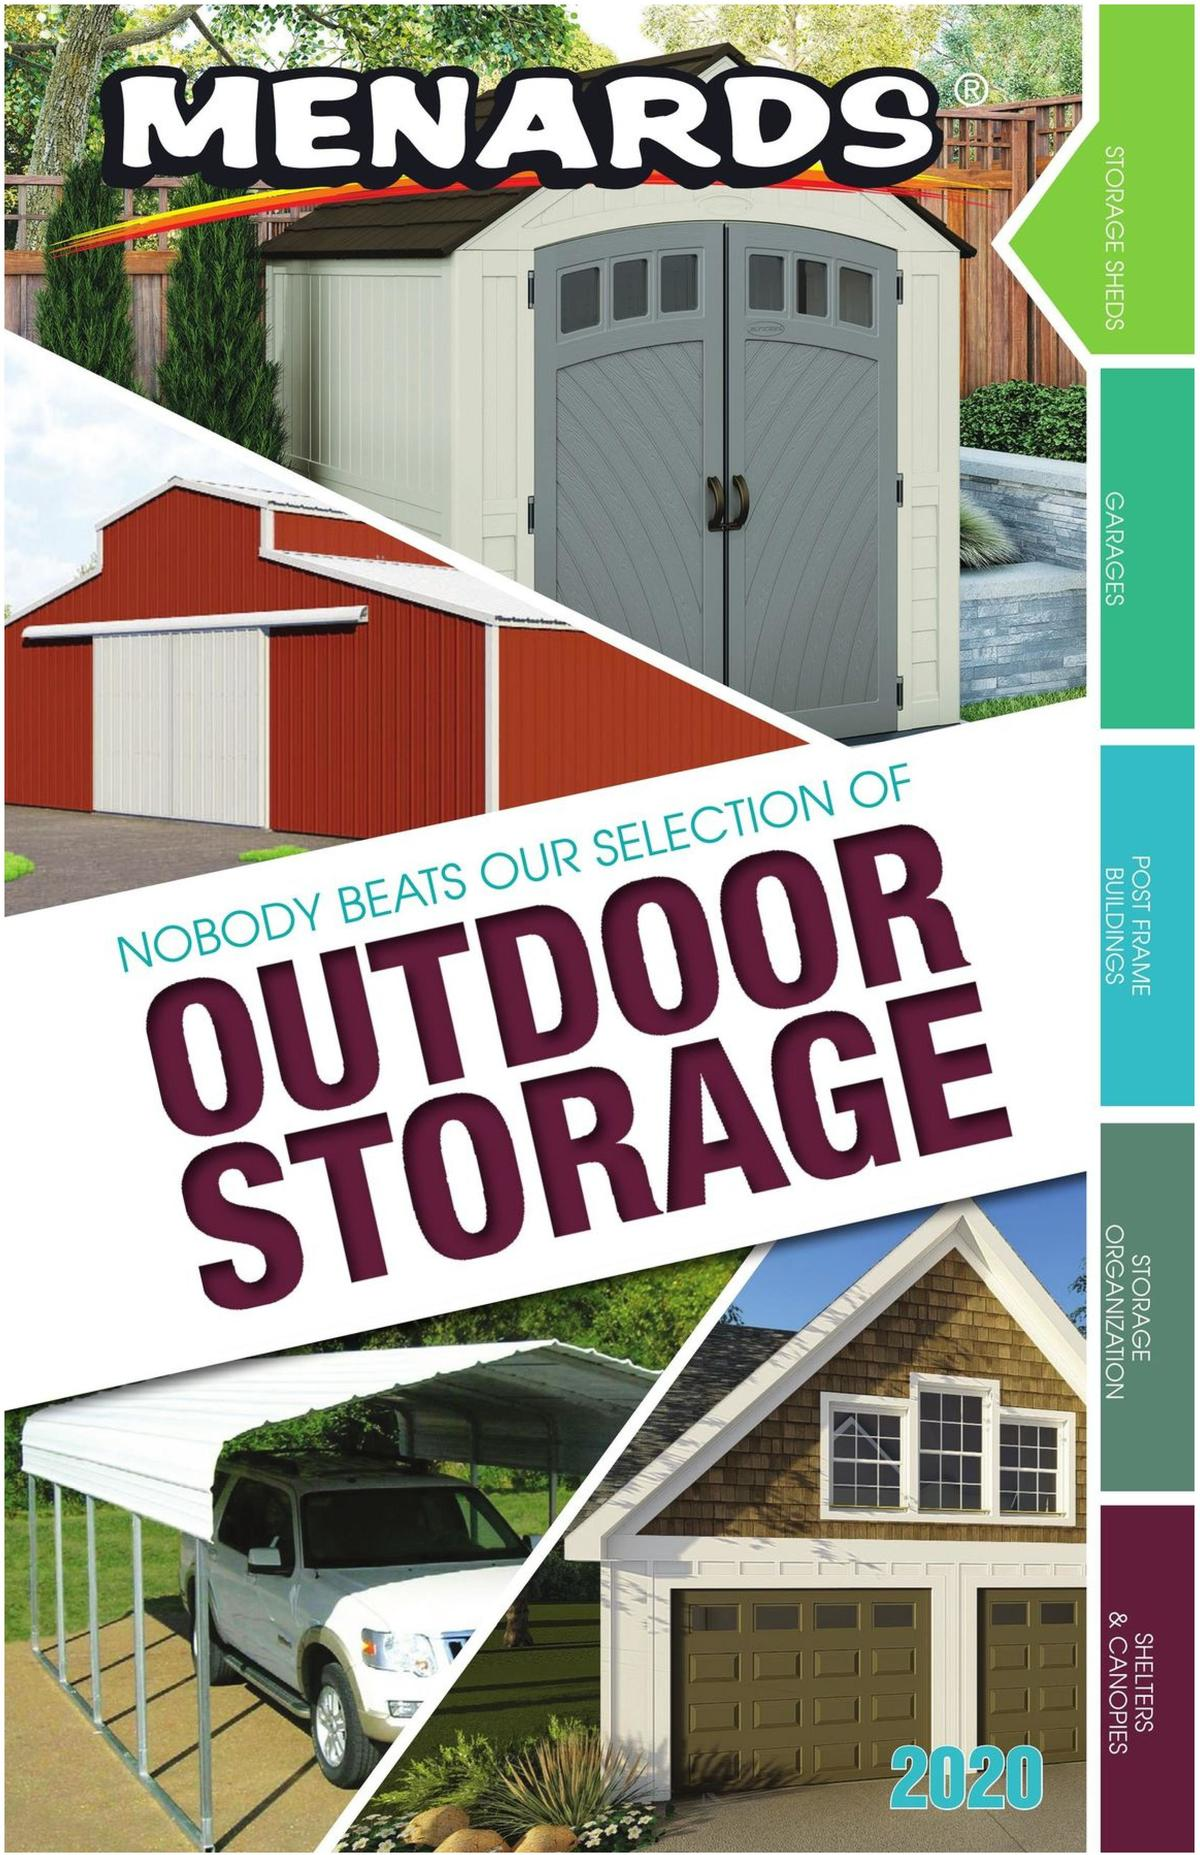 Menards Outdoor Storage Catalog Weekly Ad from August 1